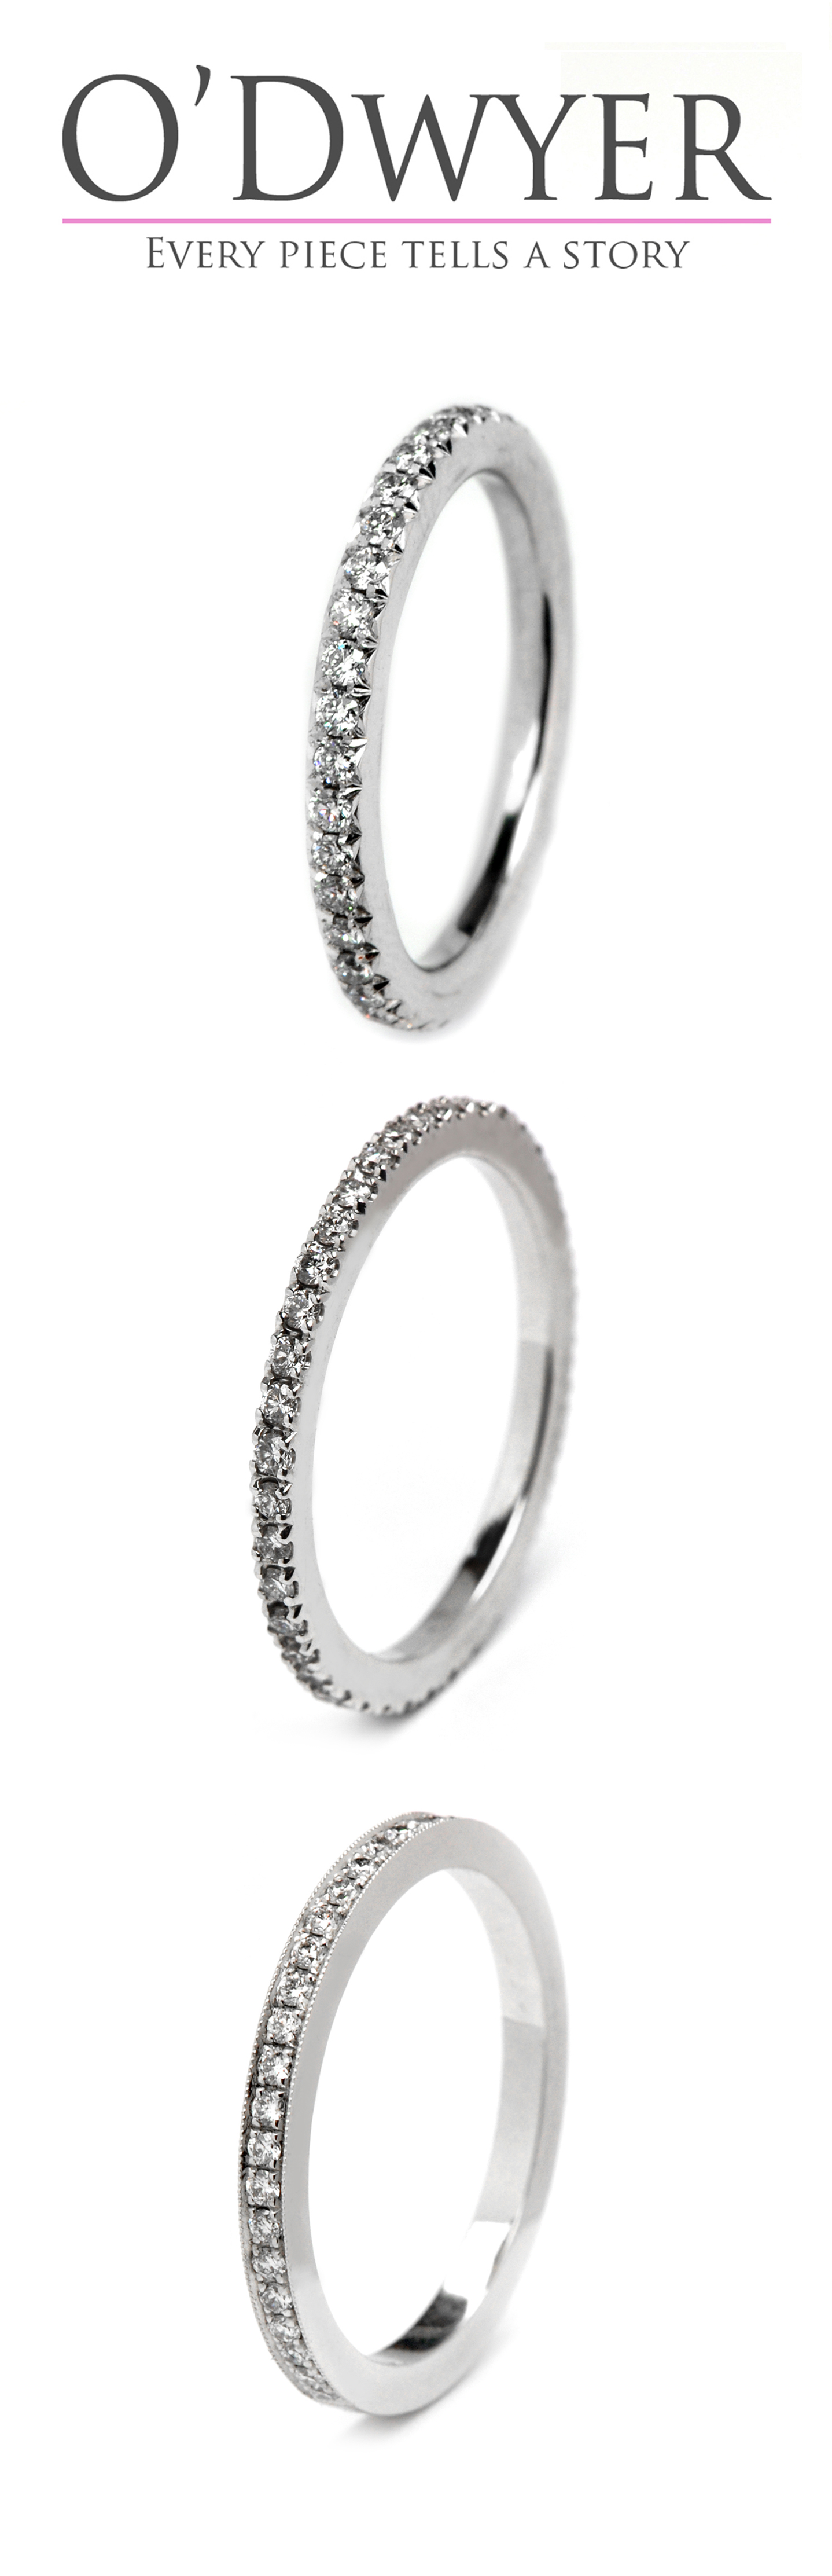 Wedding Bands 18ct white gold wedding bands with